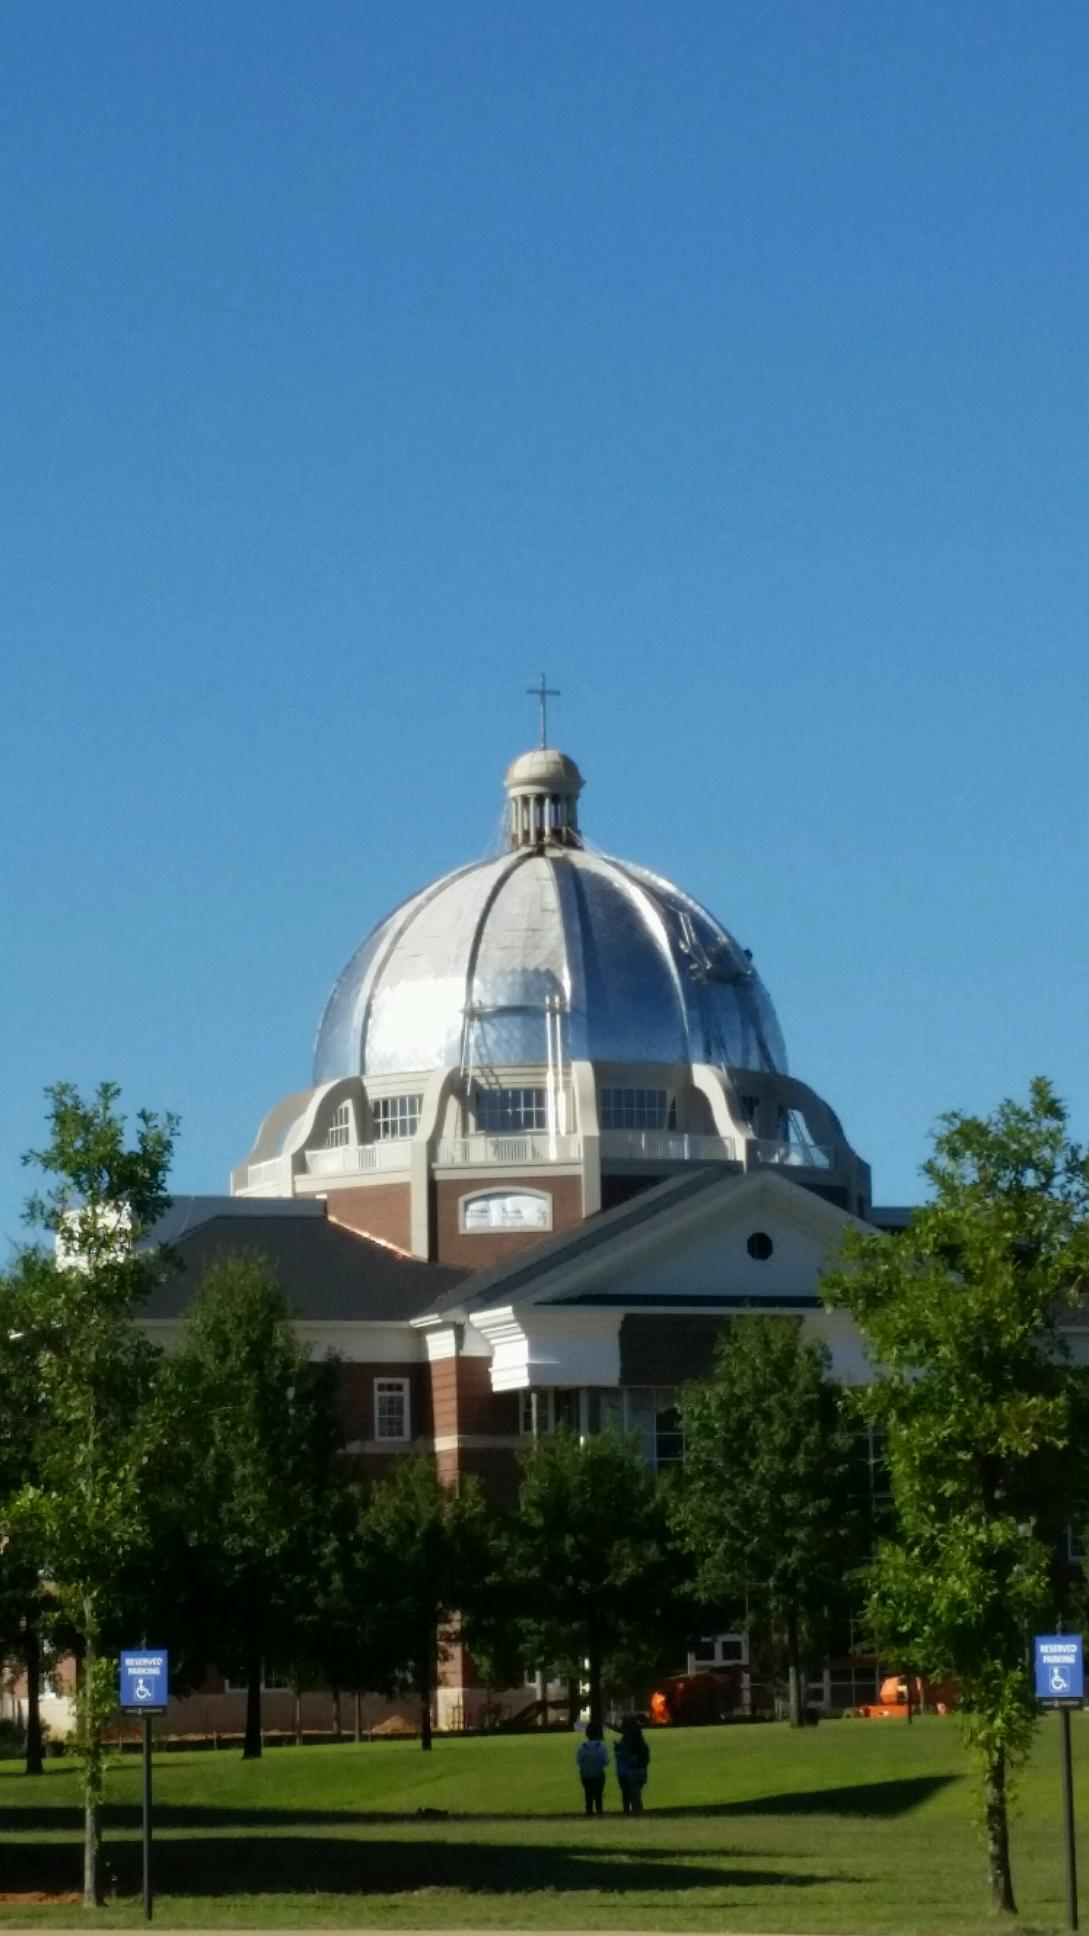 Terne stainless dome